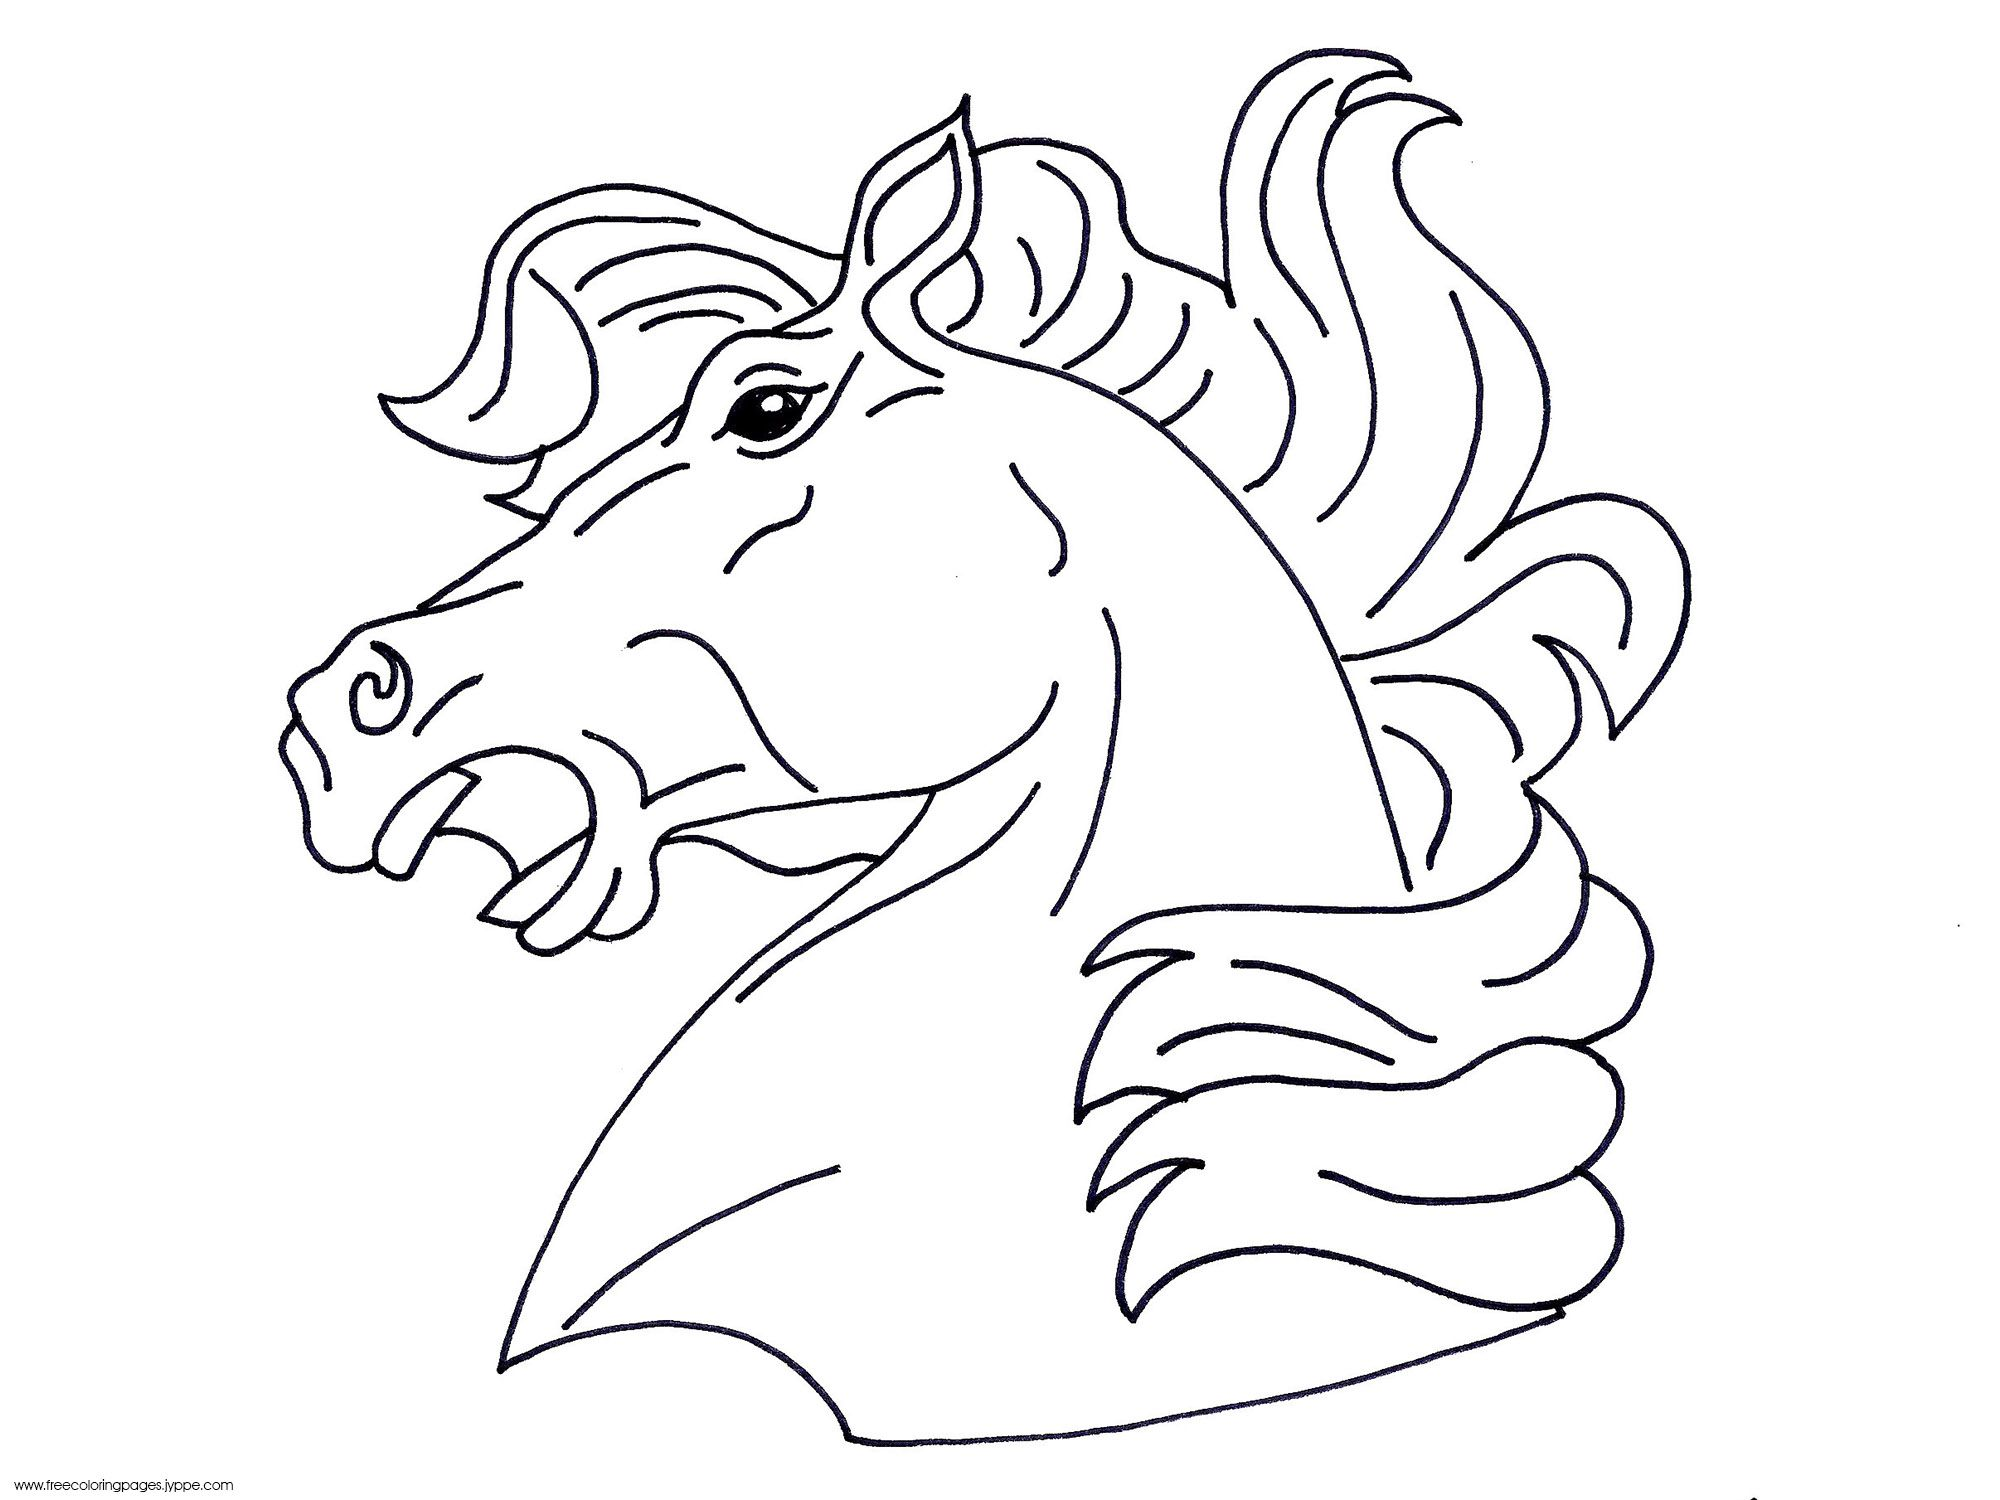 Rearing Horse Coloring Pages | Whining, Male Horse\'s Head | Cartoons ...